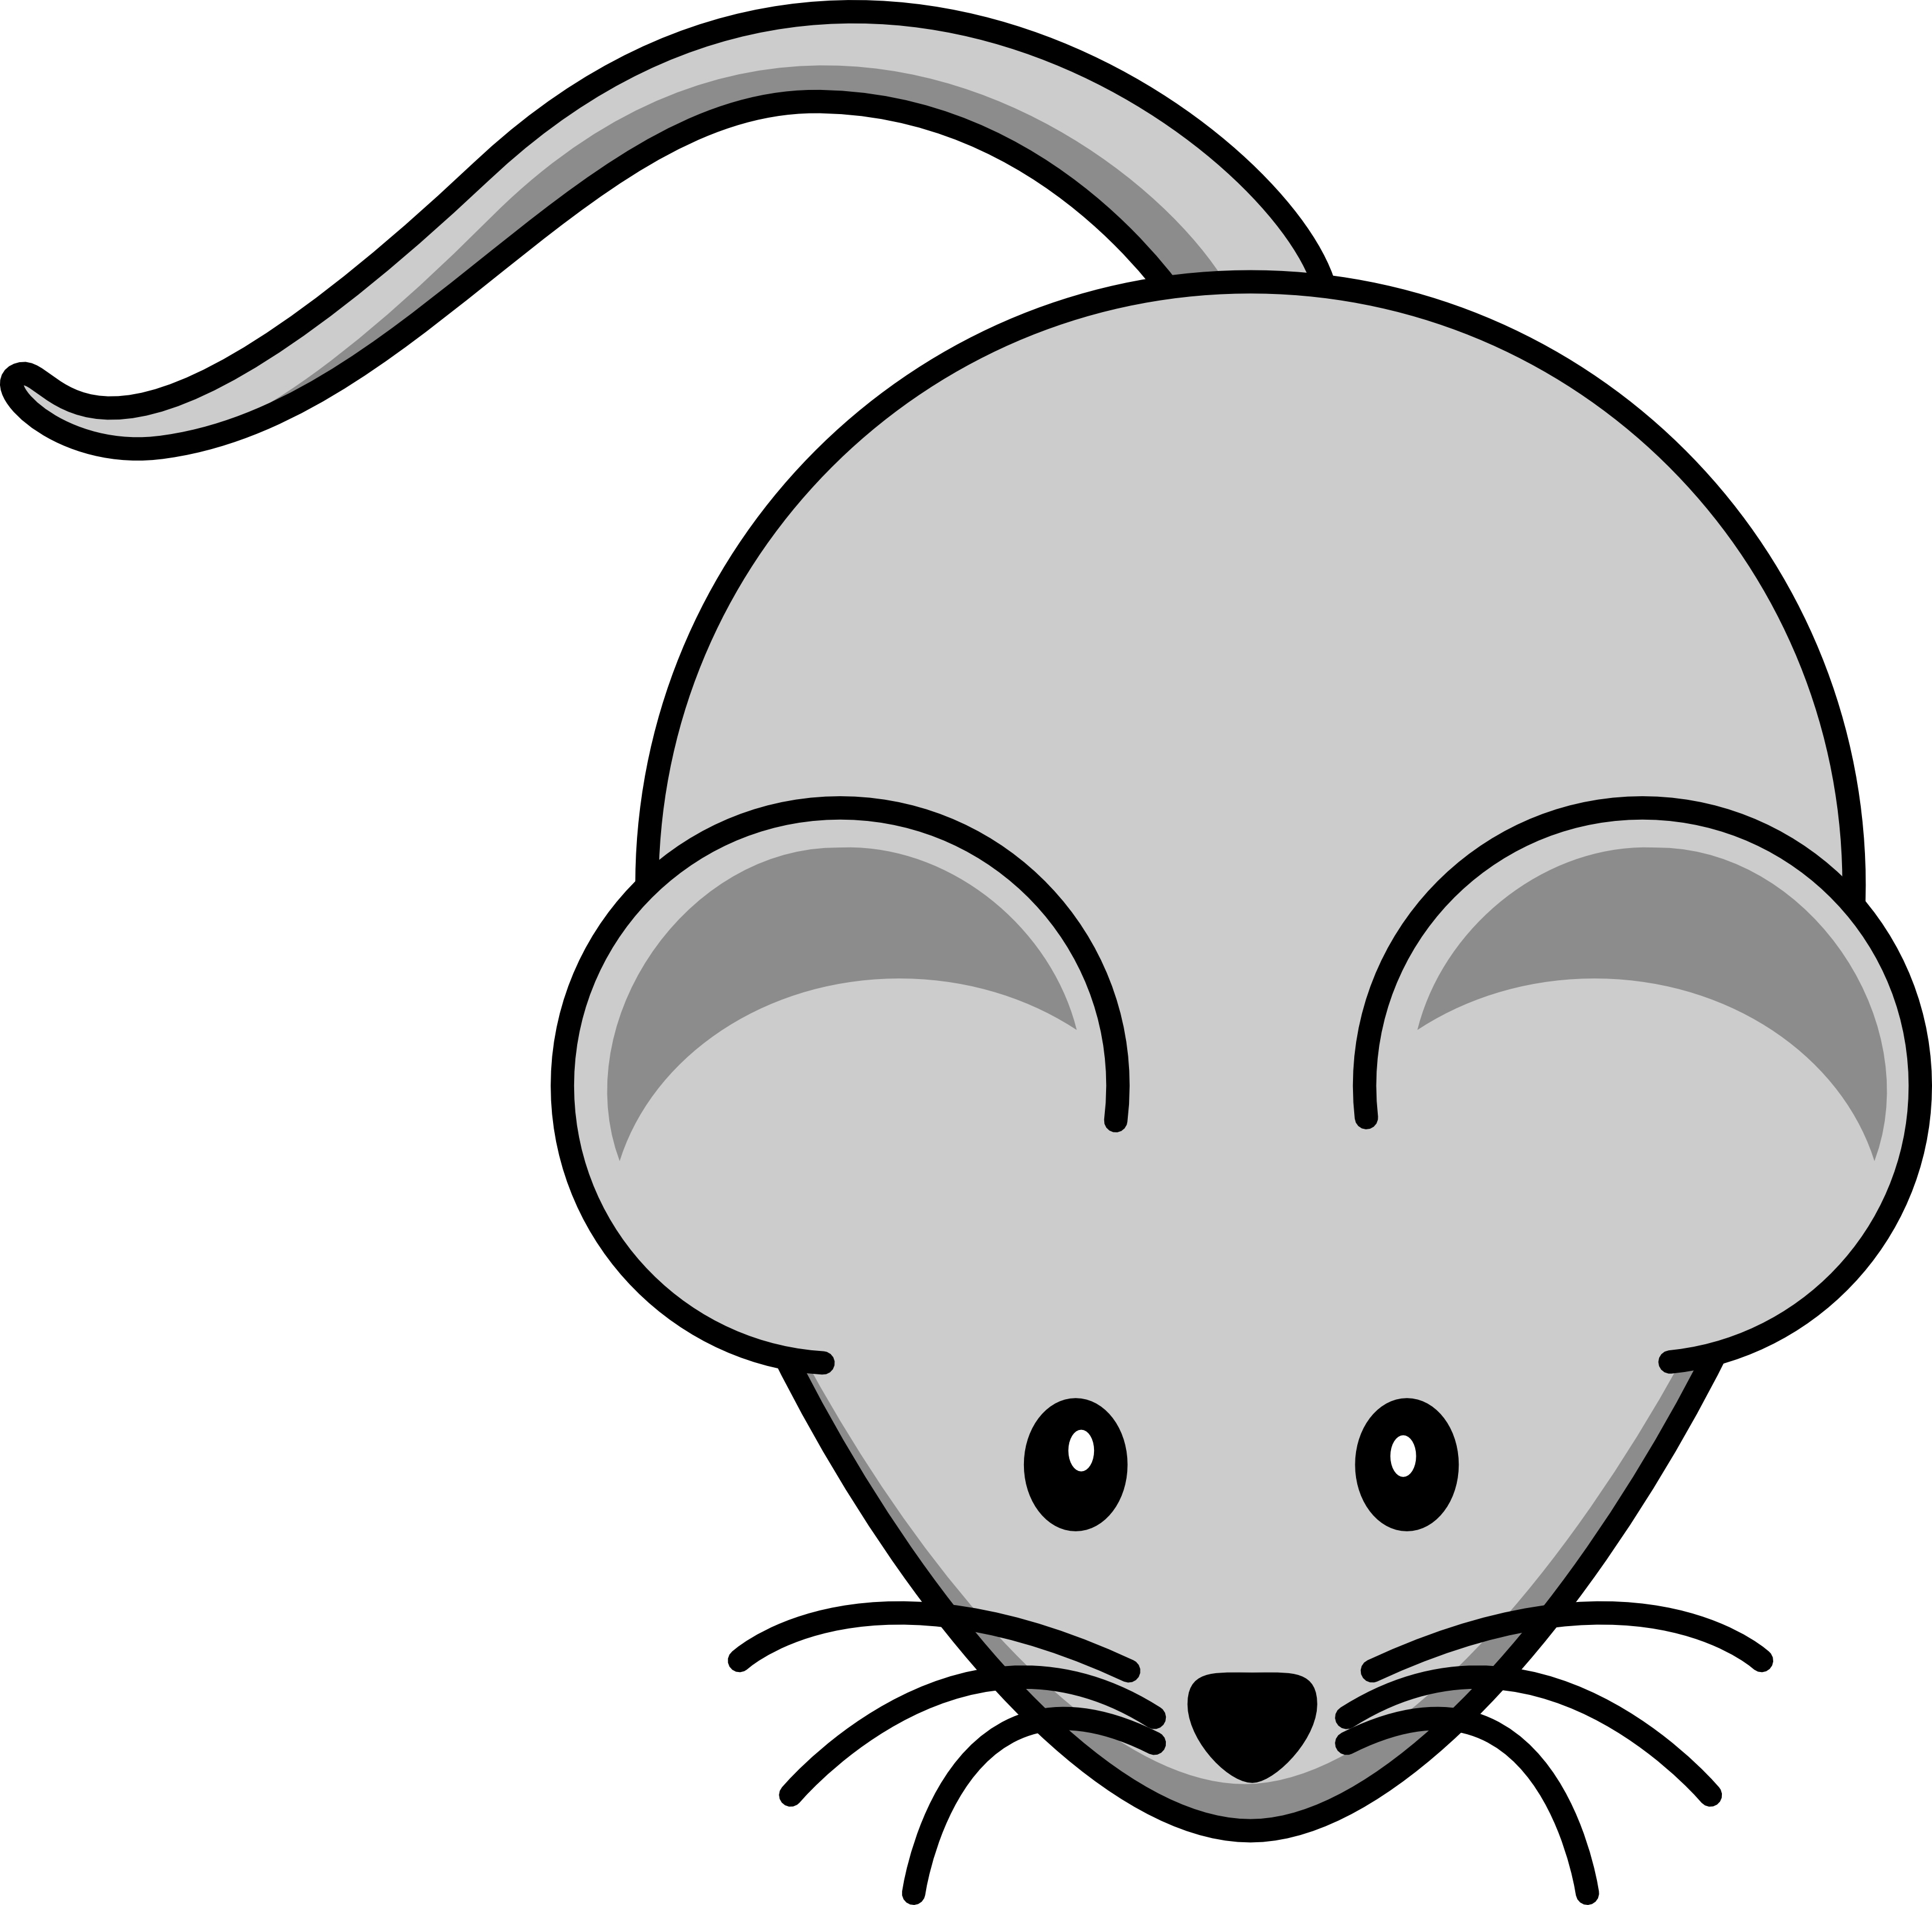 Mice clipart #3, Download drawings